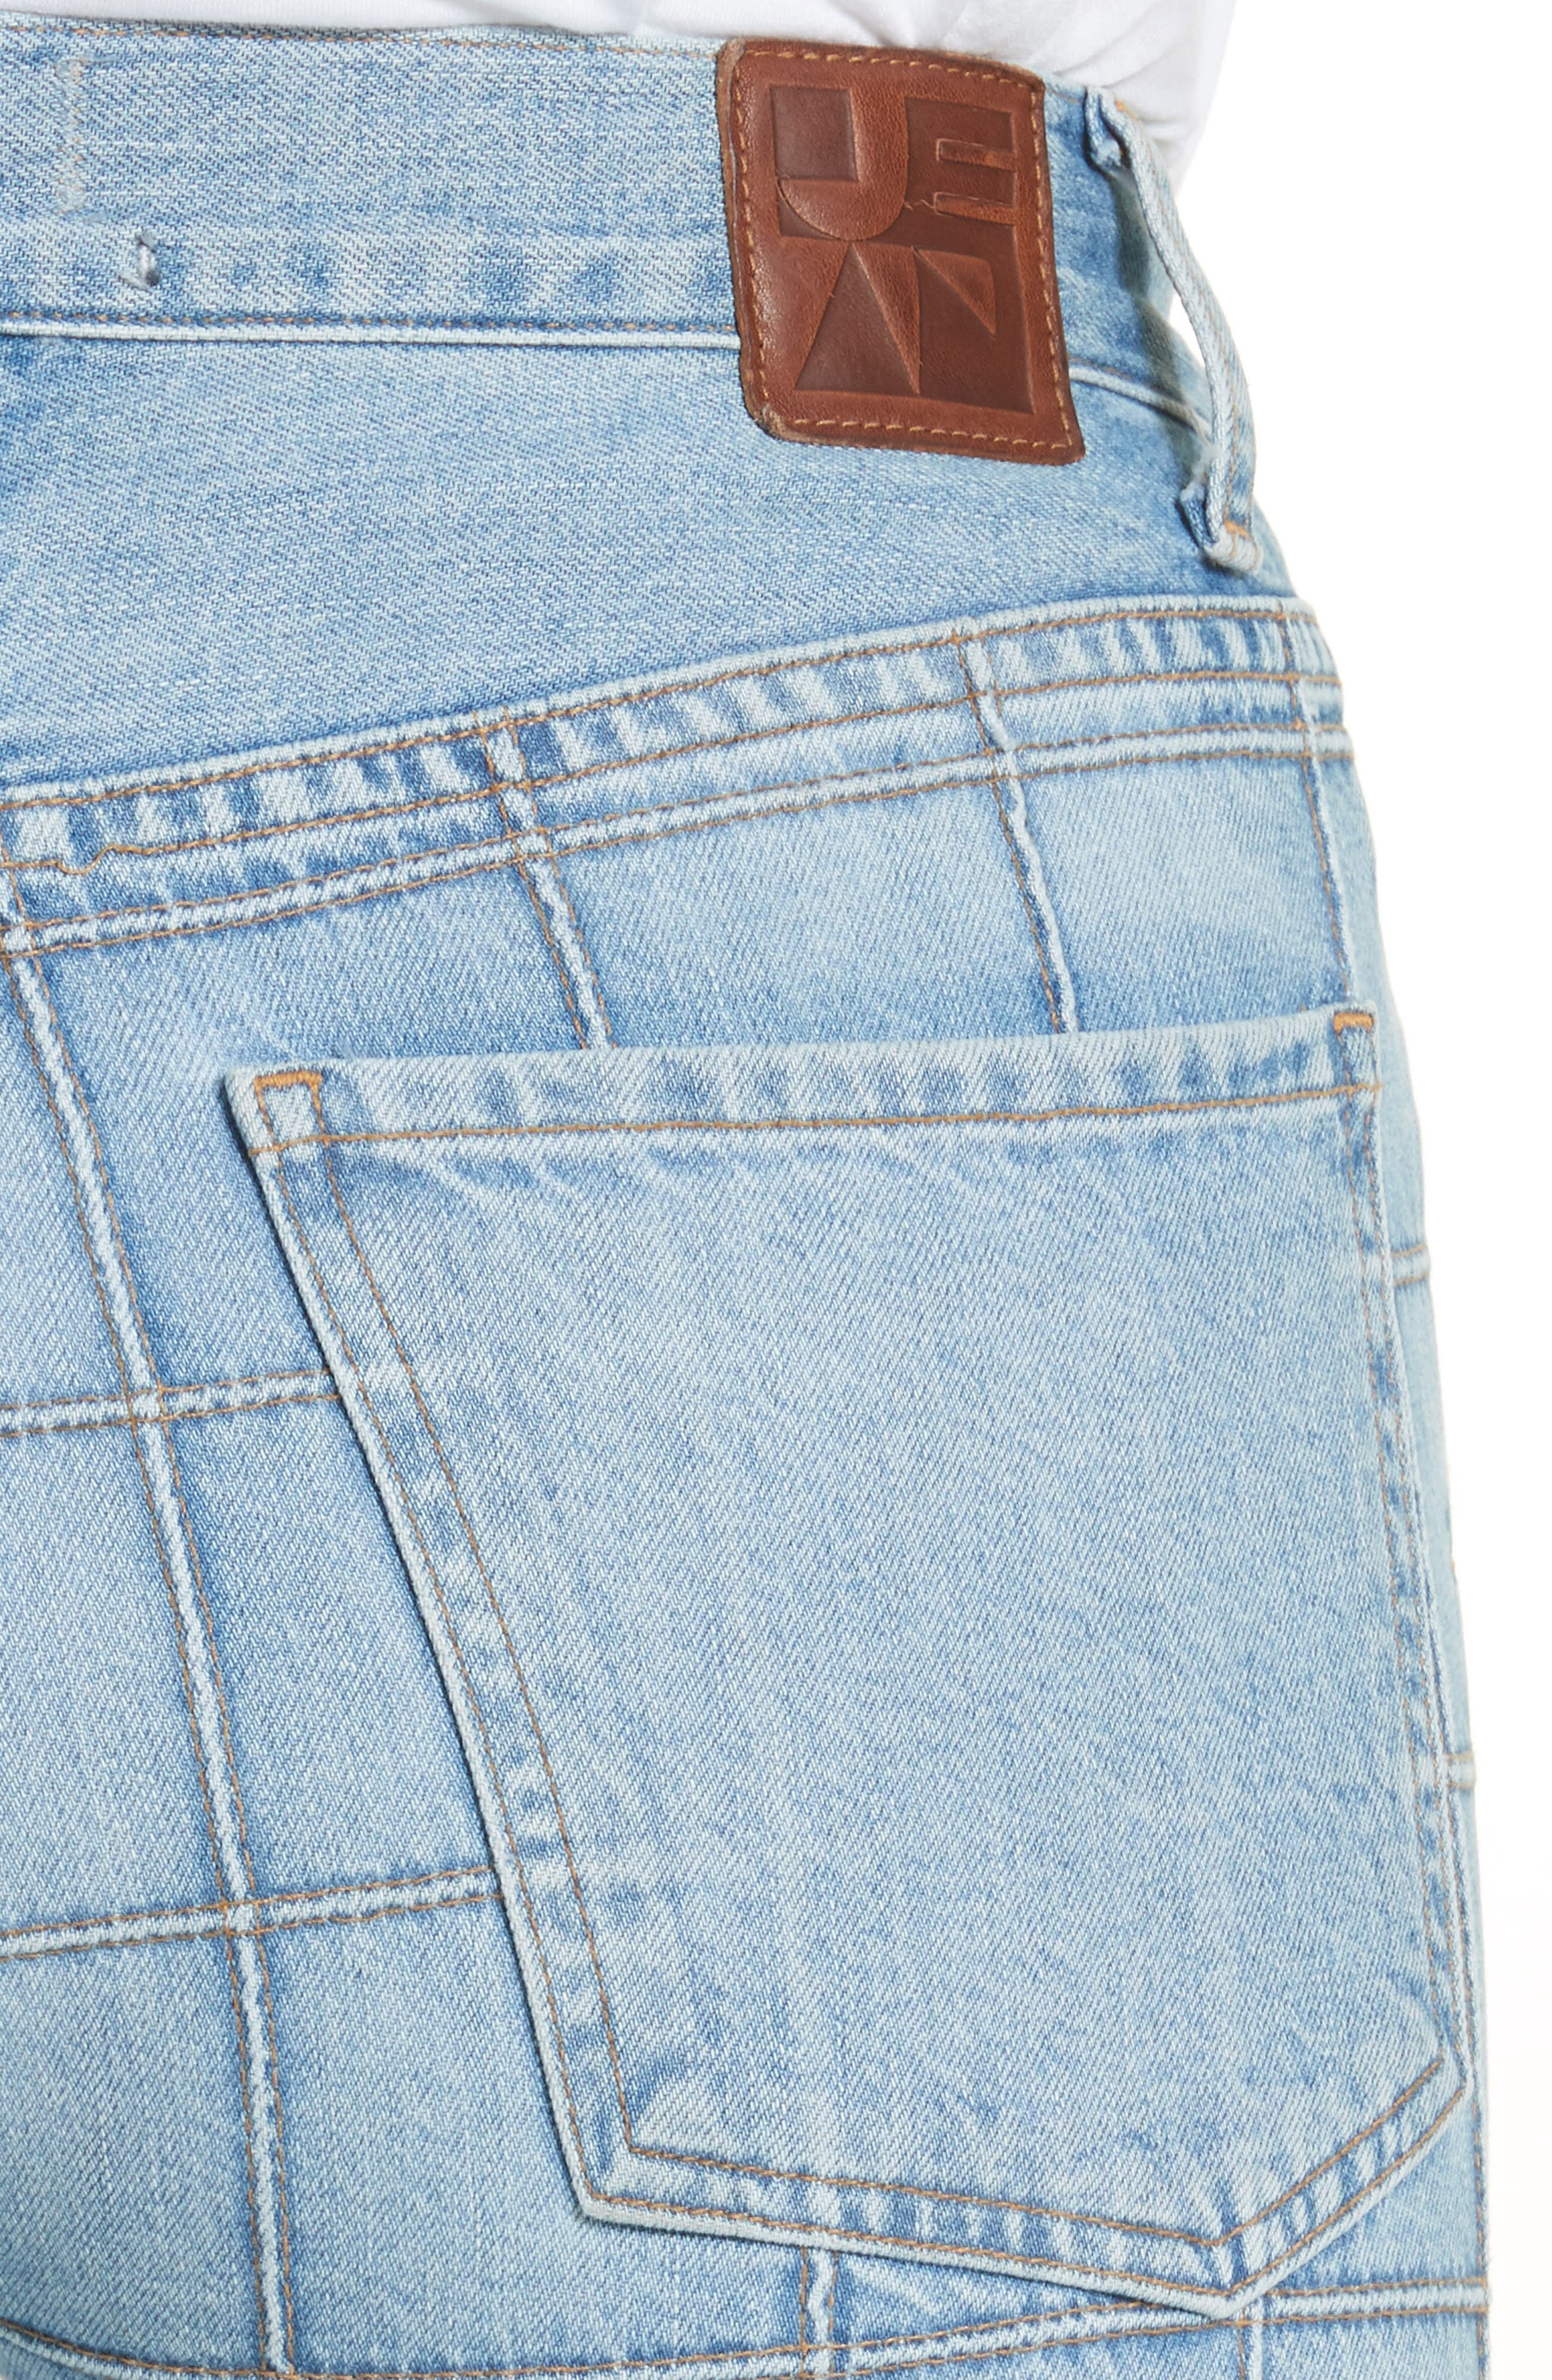 Janis High Rise Flare Jeans,                             Alternate thumbnail 4, color,                             CARNABY